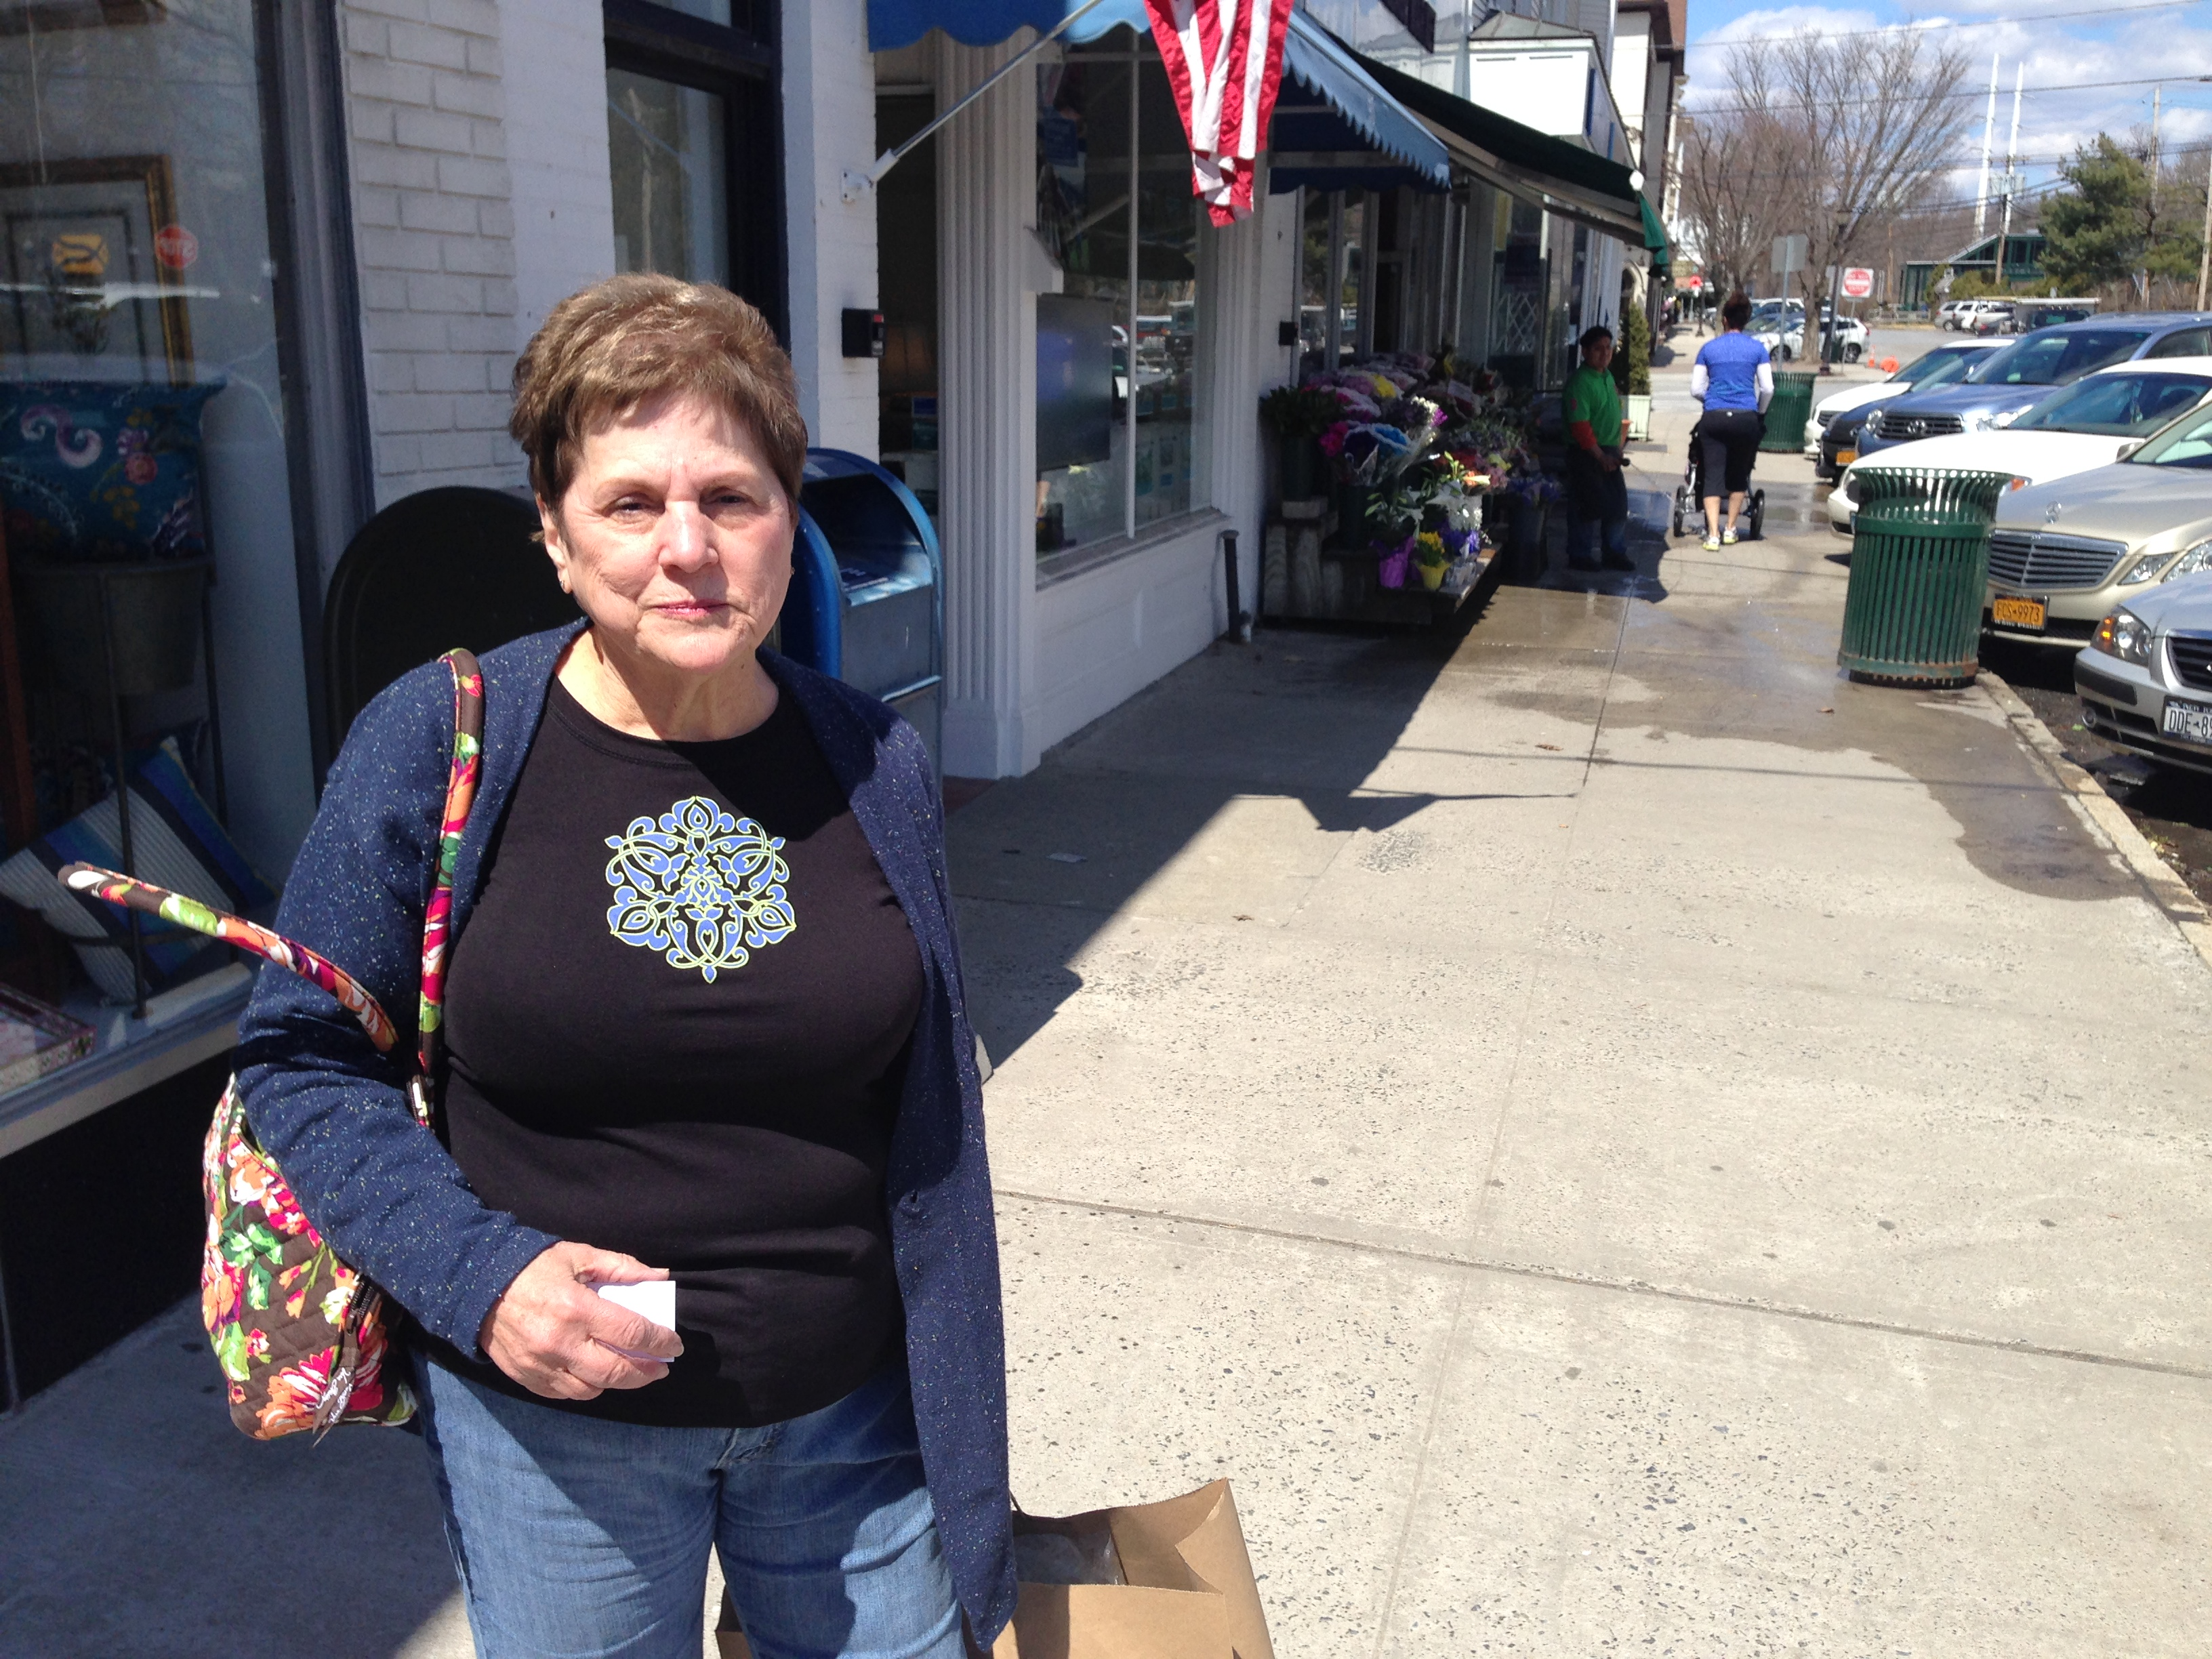 Jeanette Gerfin of Somers gave her opinion as she shopped in Katonah.